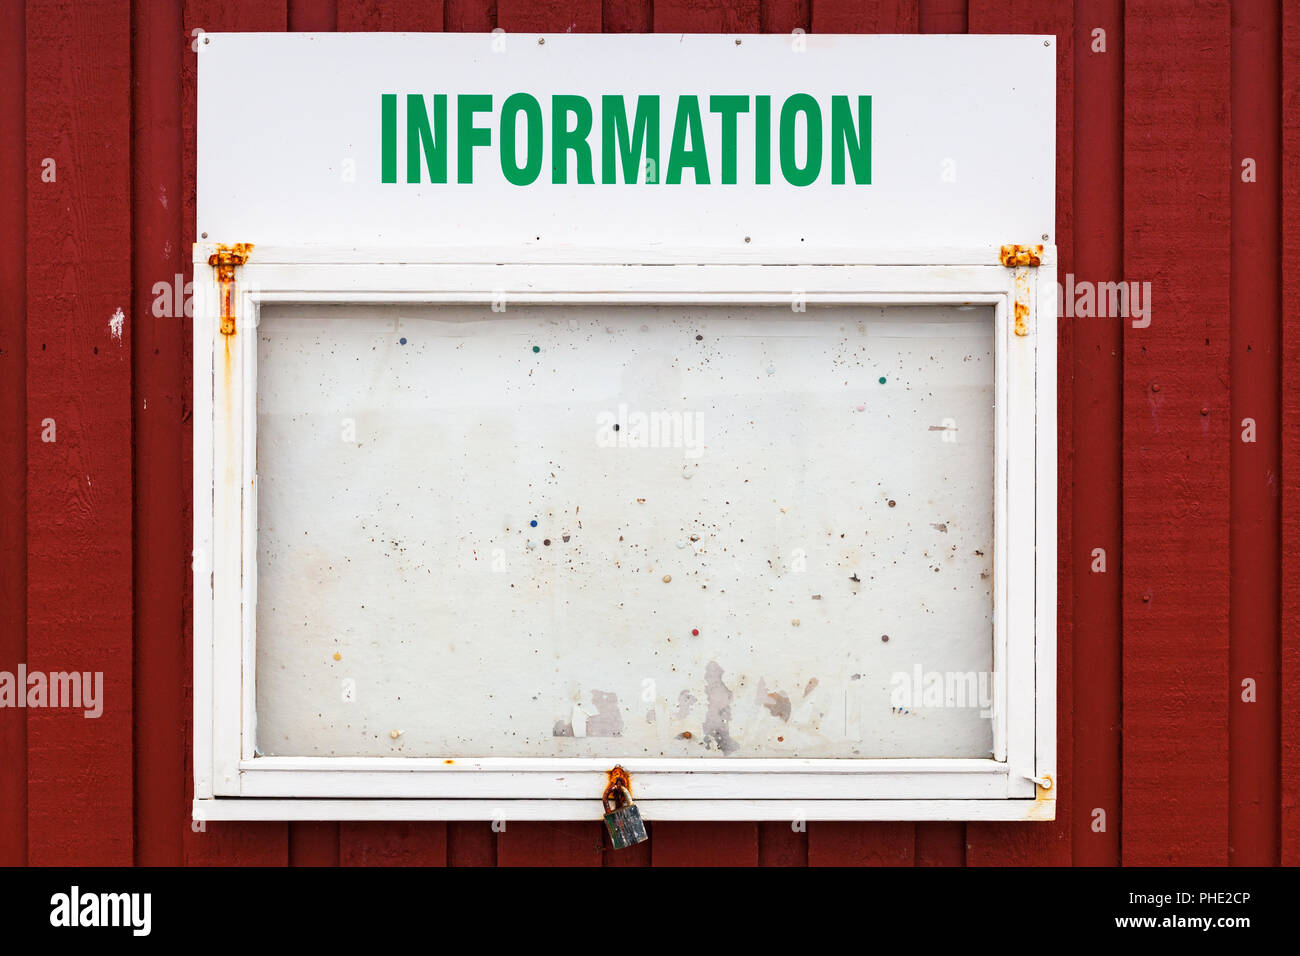 Information board for notes on a house wall - Stock Image